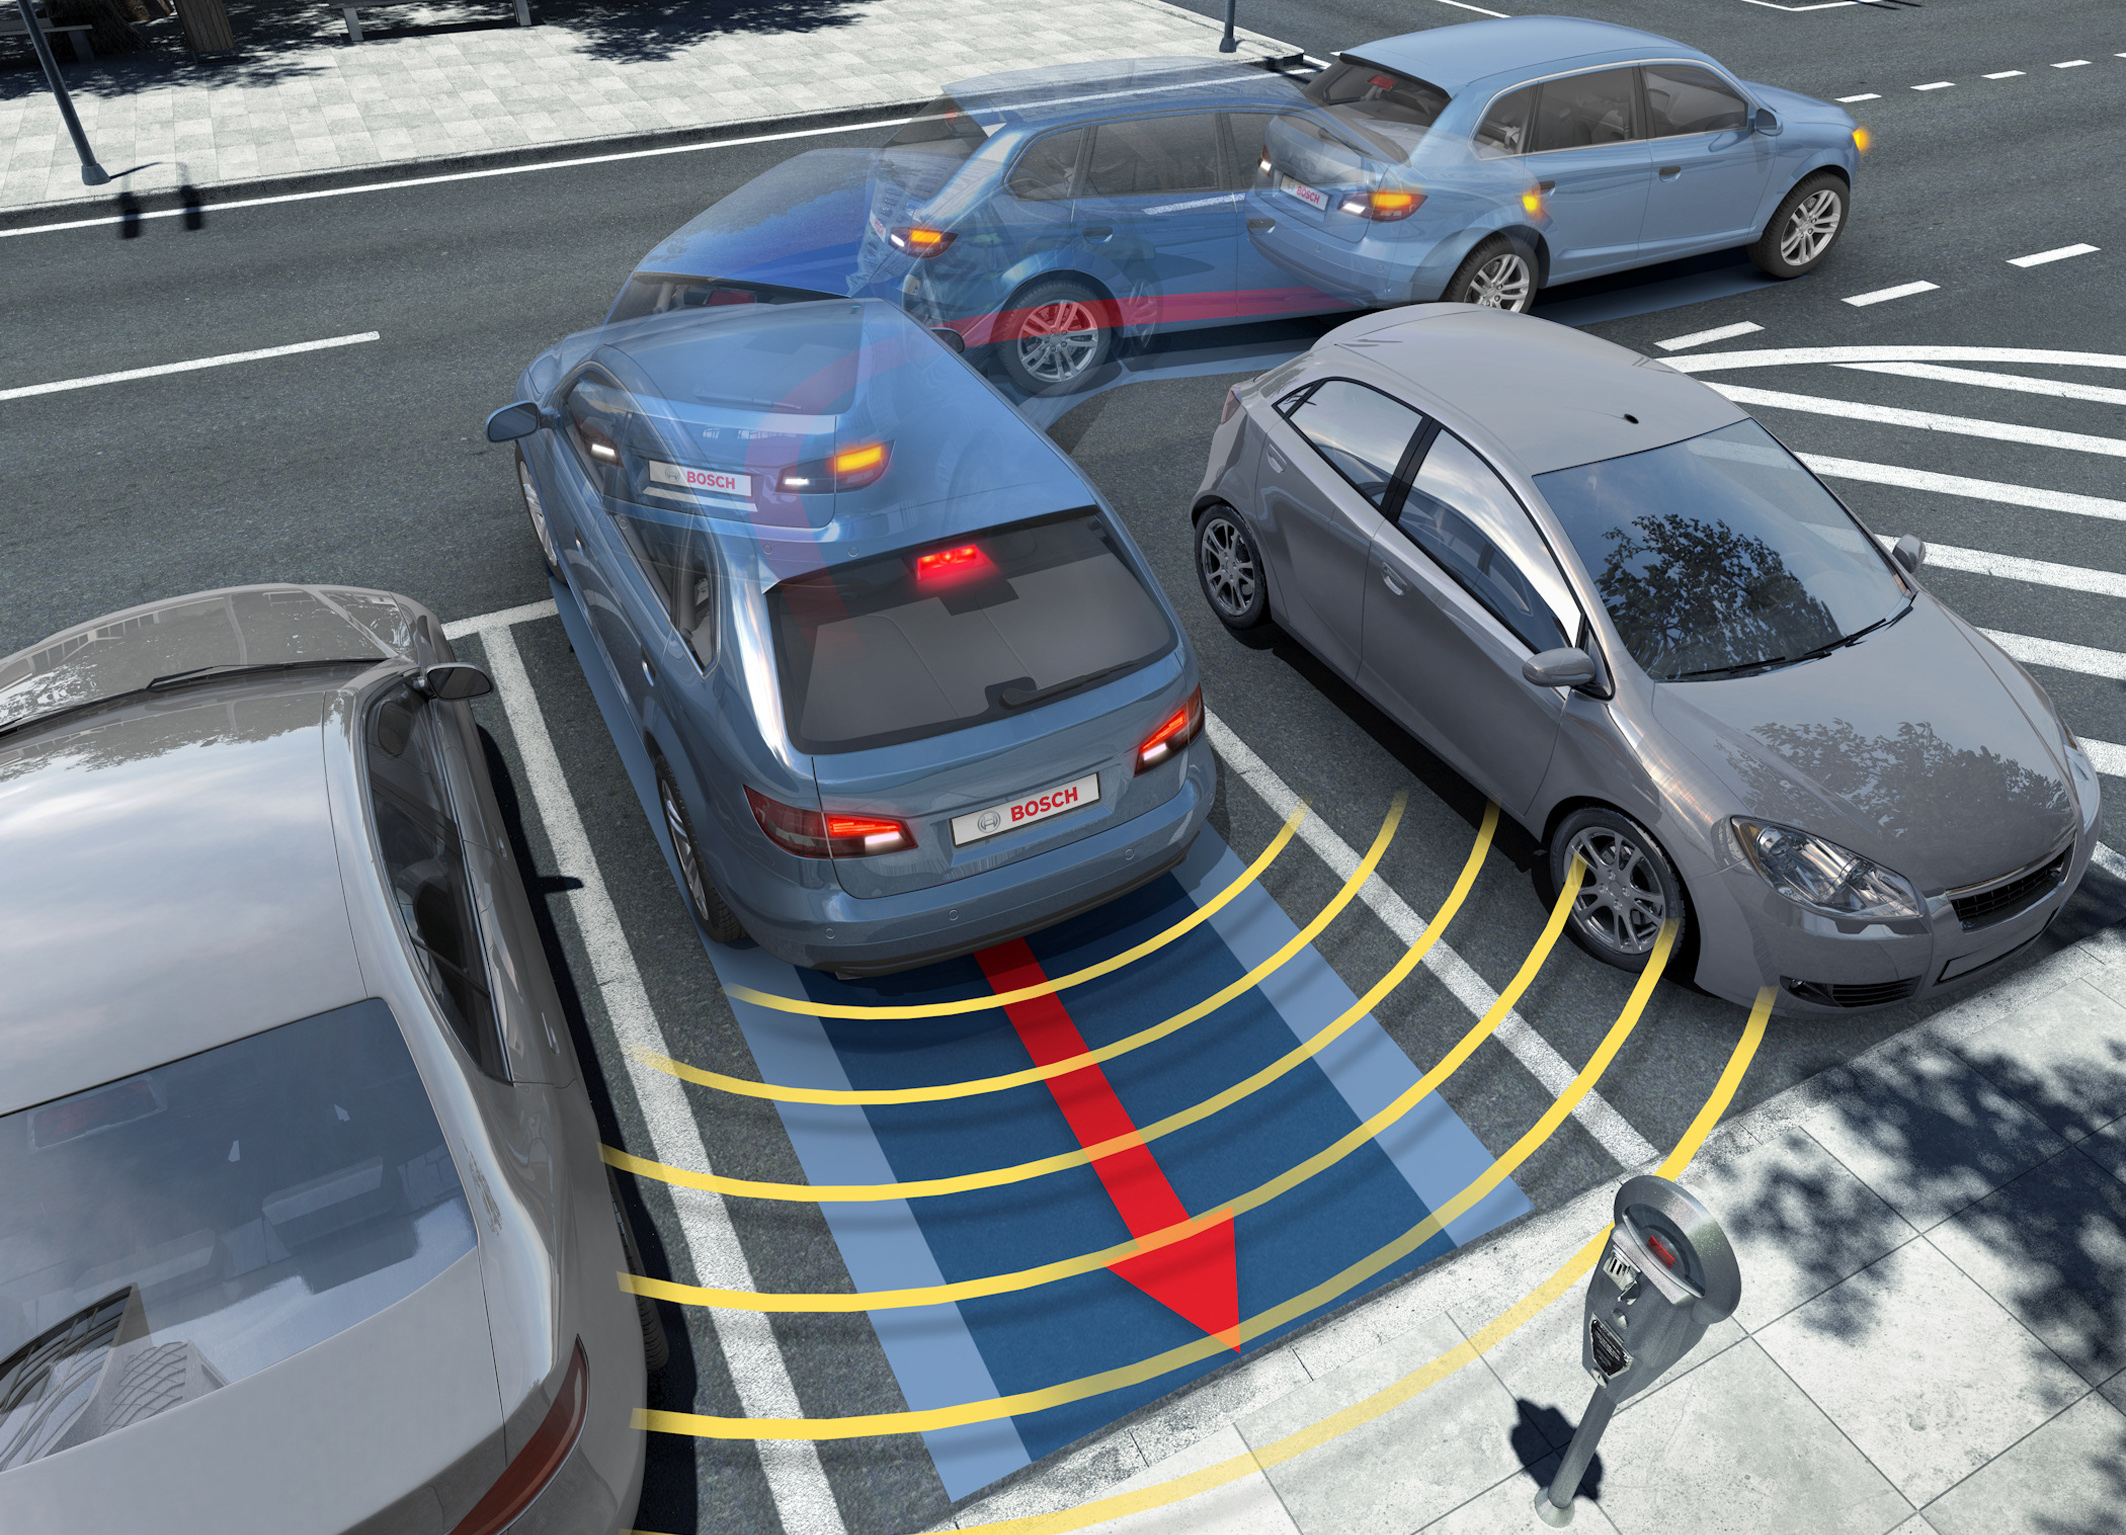 Bosch technology for bay parking